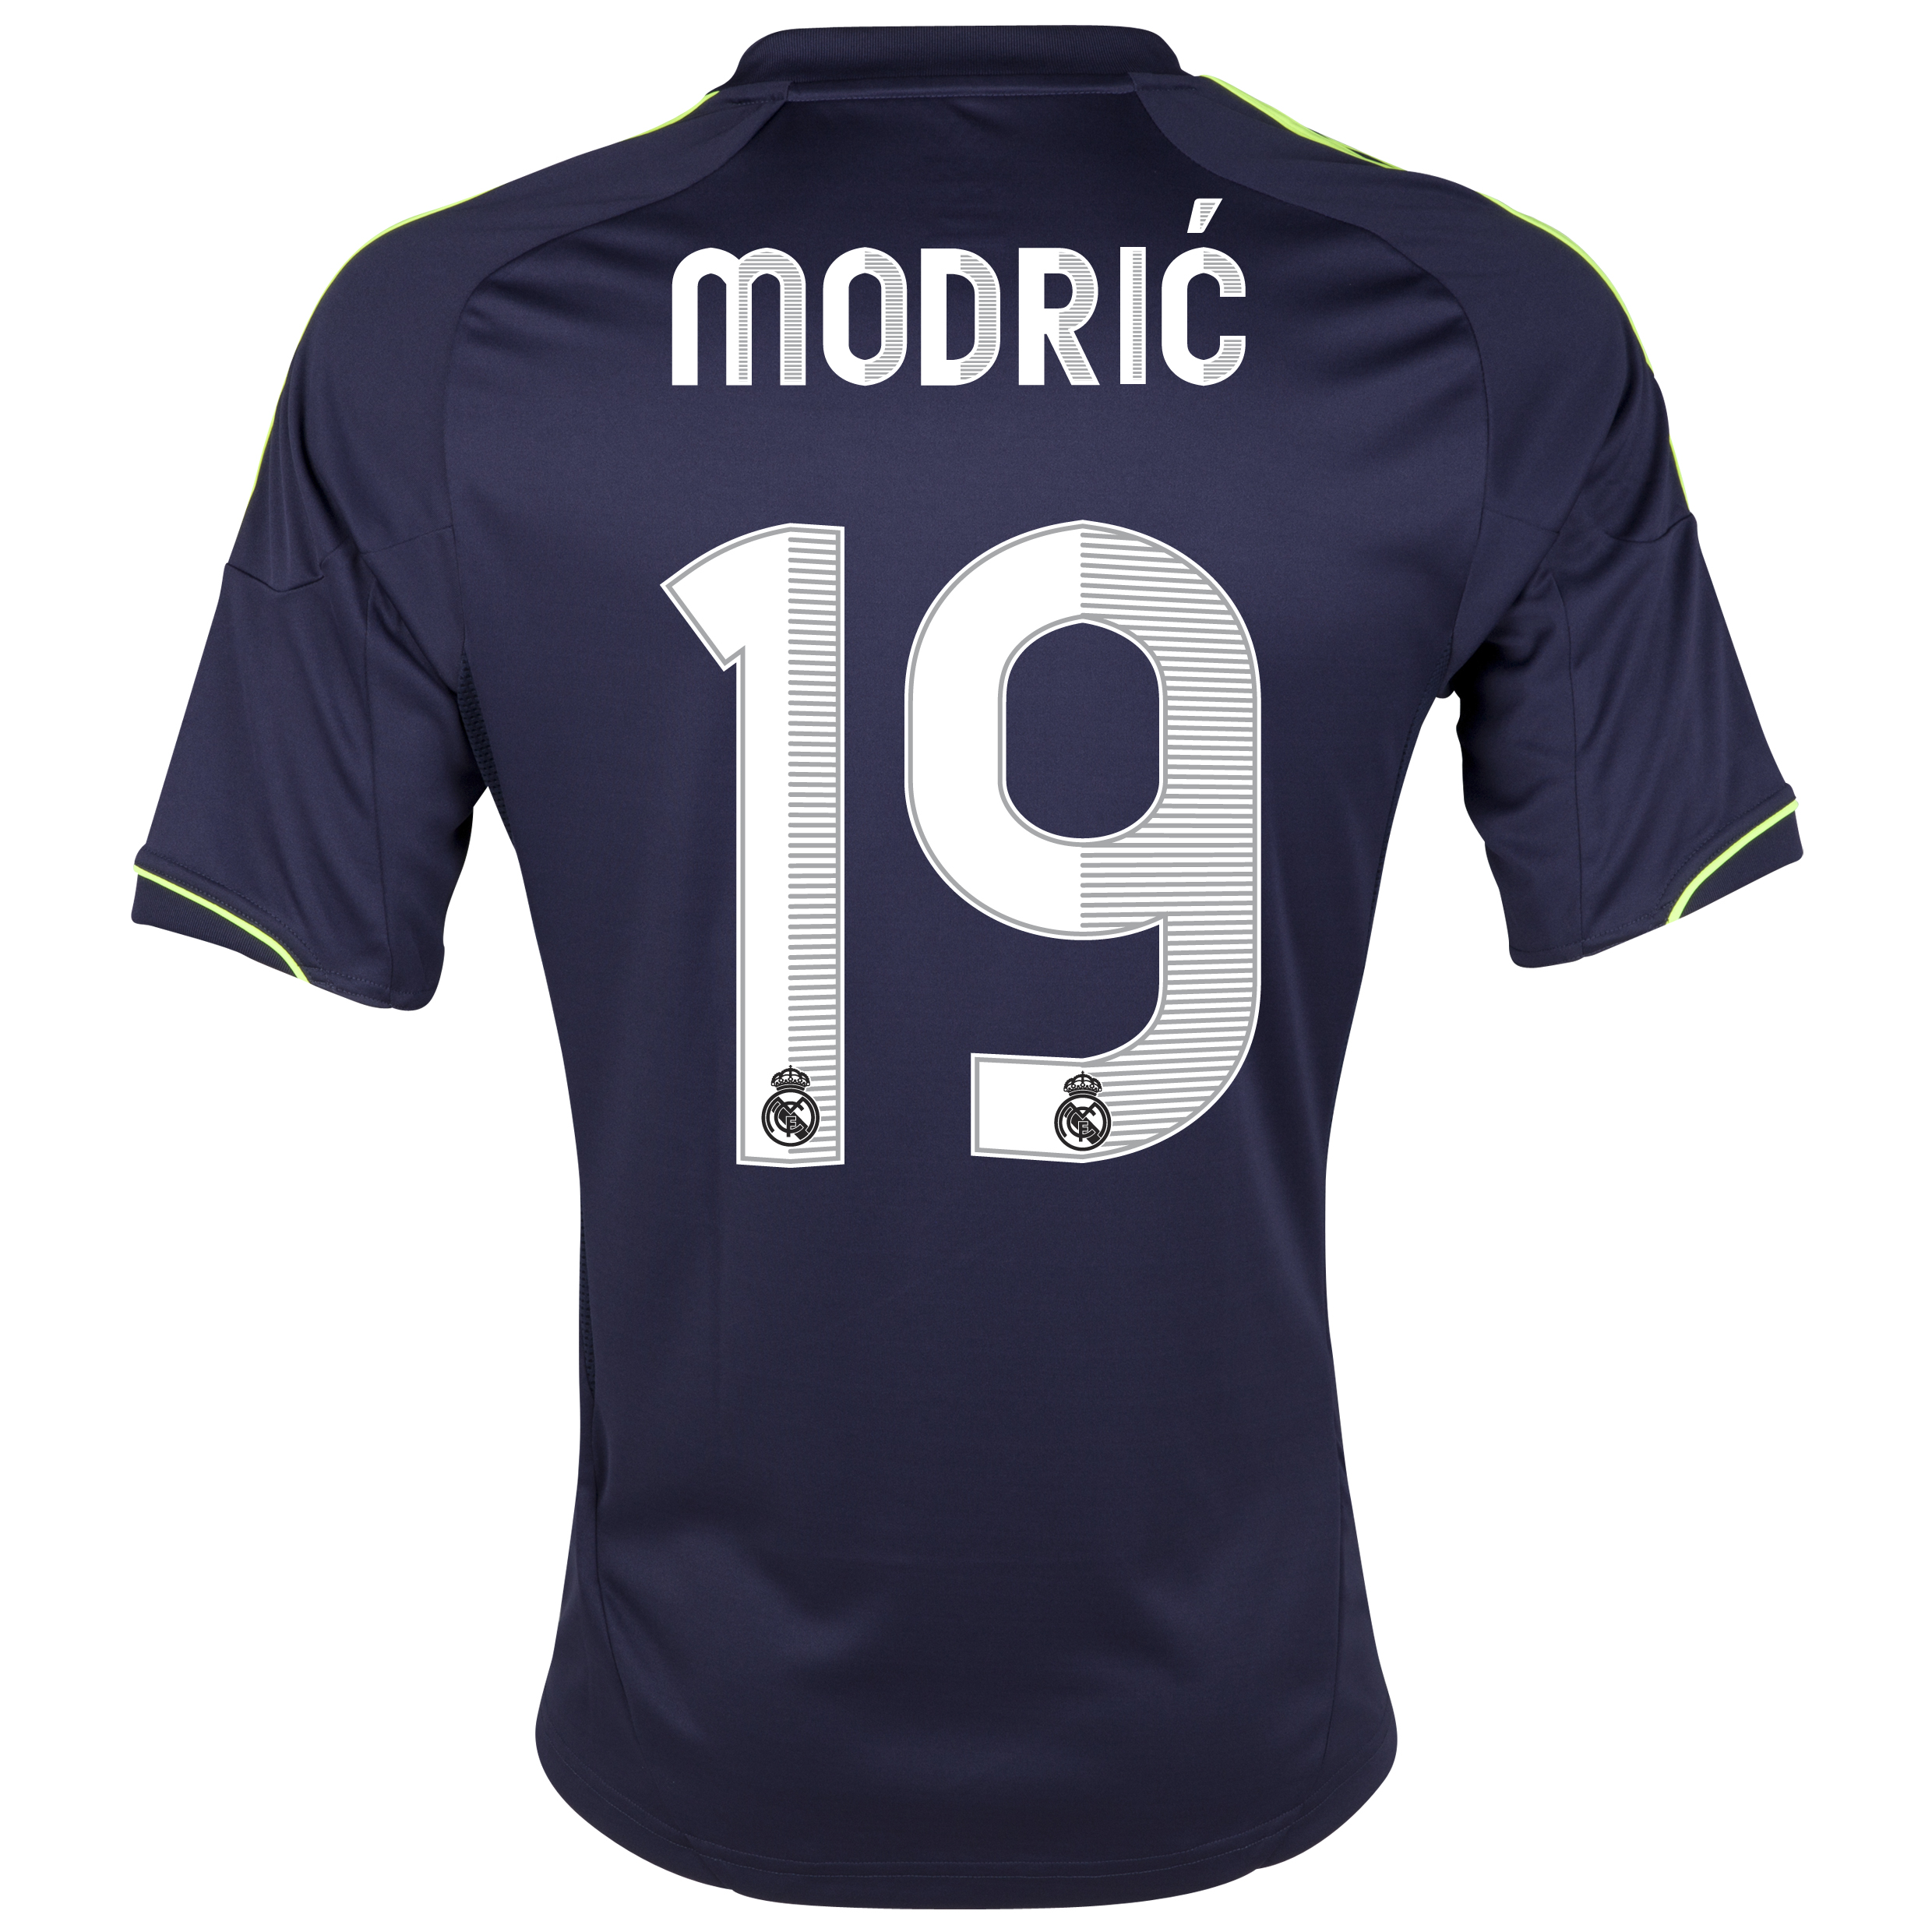 Real Madrid Away Shirt 2012/13 - Youths with Modric 19 printing